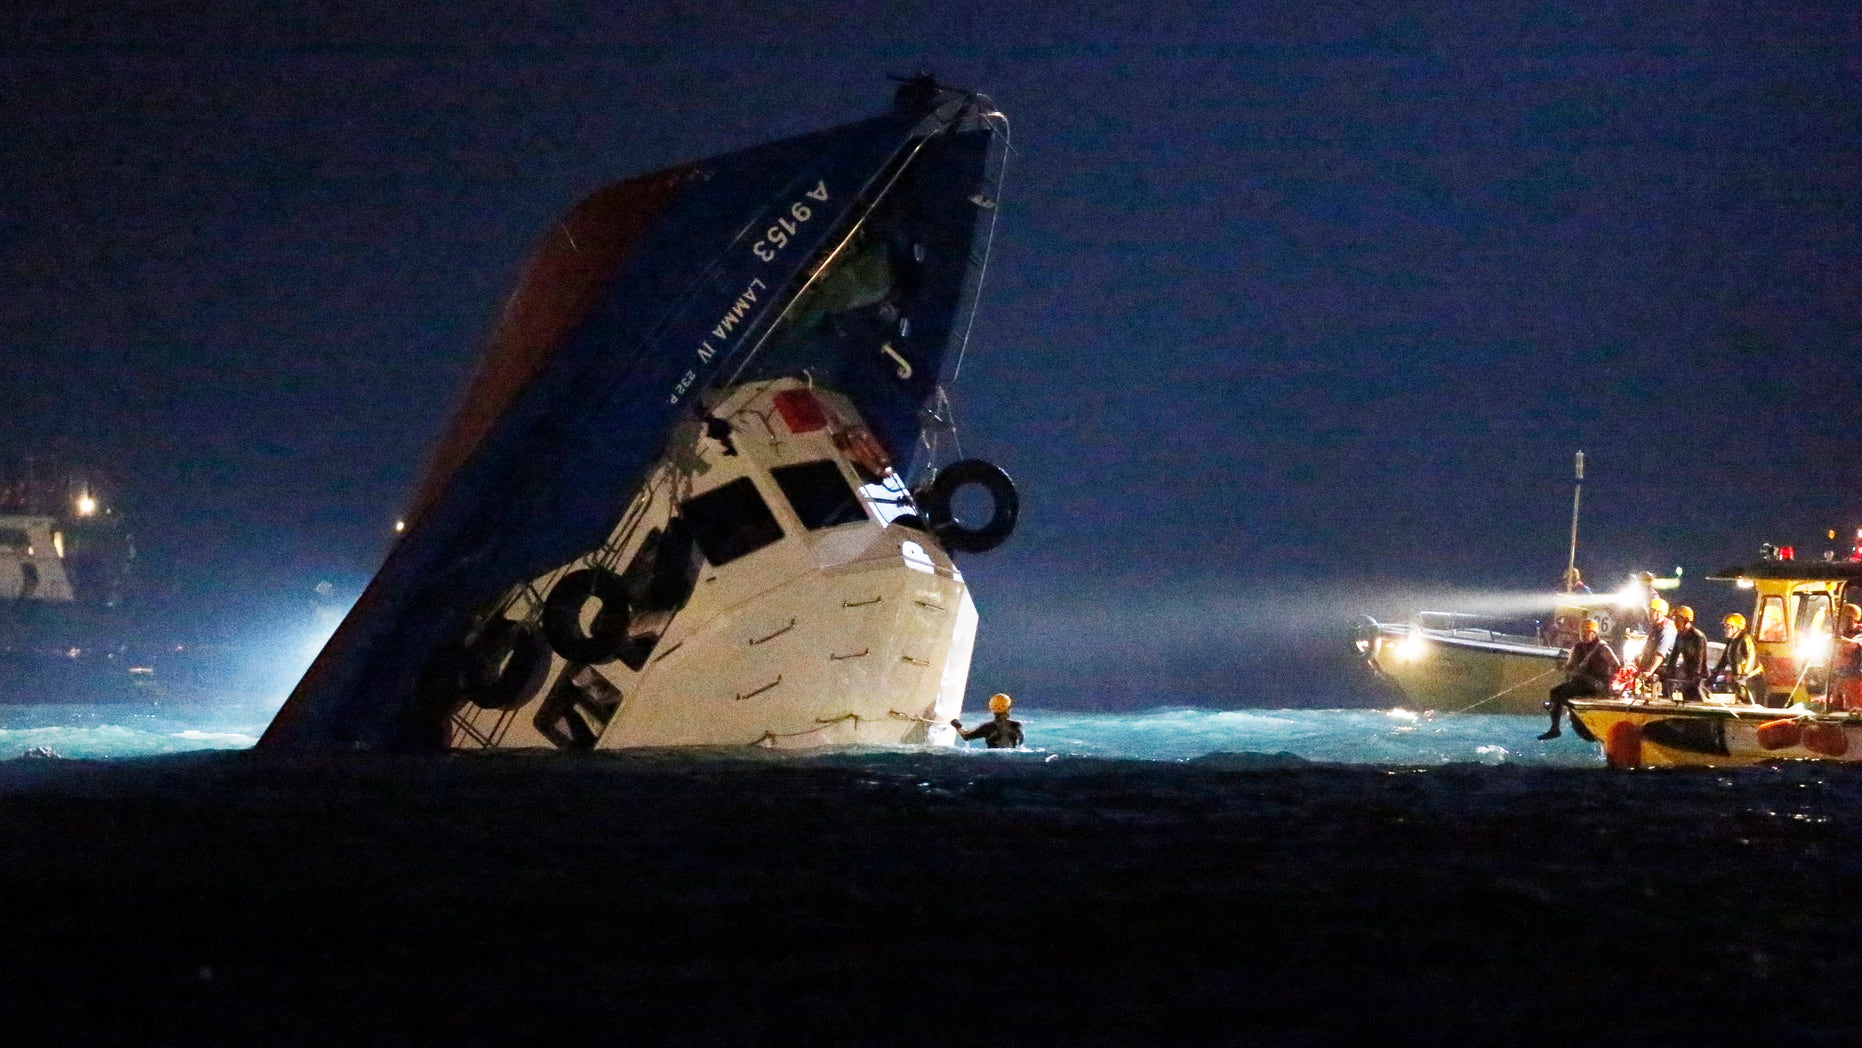 Oct. 2, 2012: Rescuers check on a half submerged boat after it collided Monday night near Lamma Island, off the southwestern coast of Hong Kong Island.